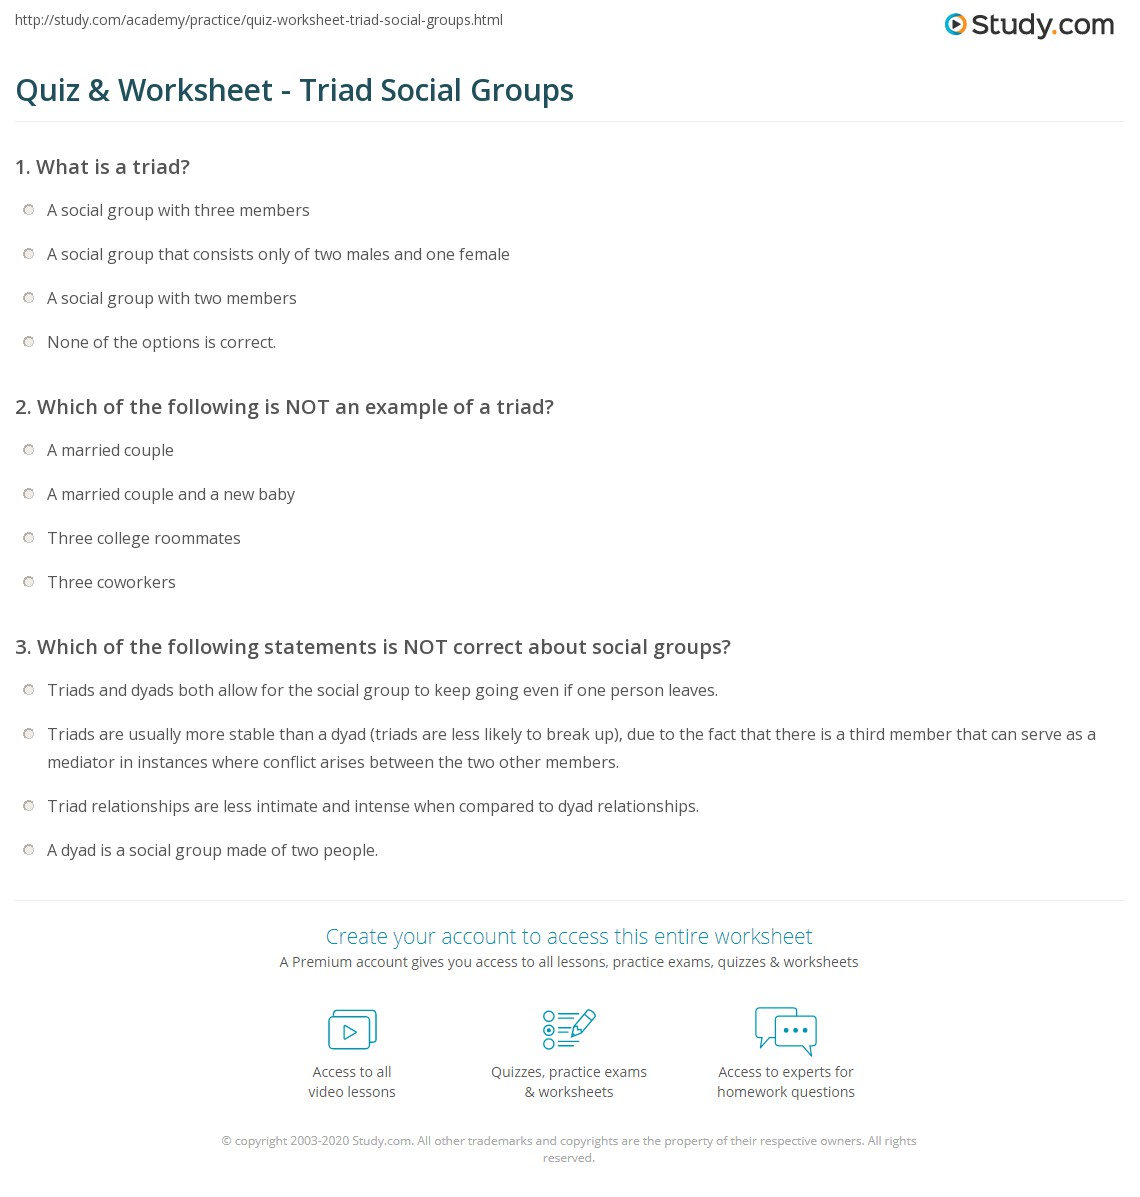 Quiz Worksheet Triad Social Groups Study